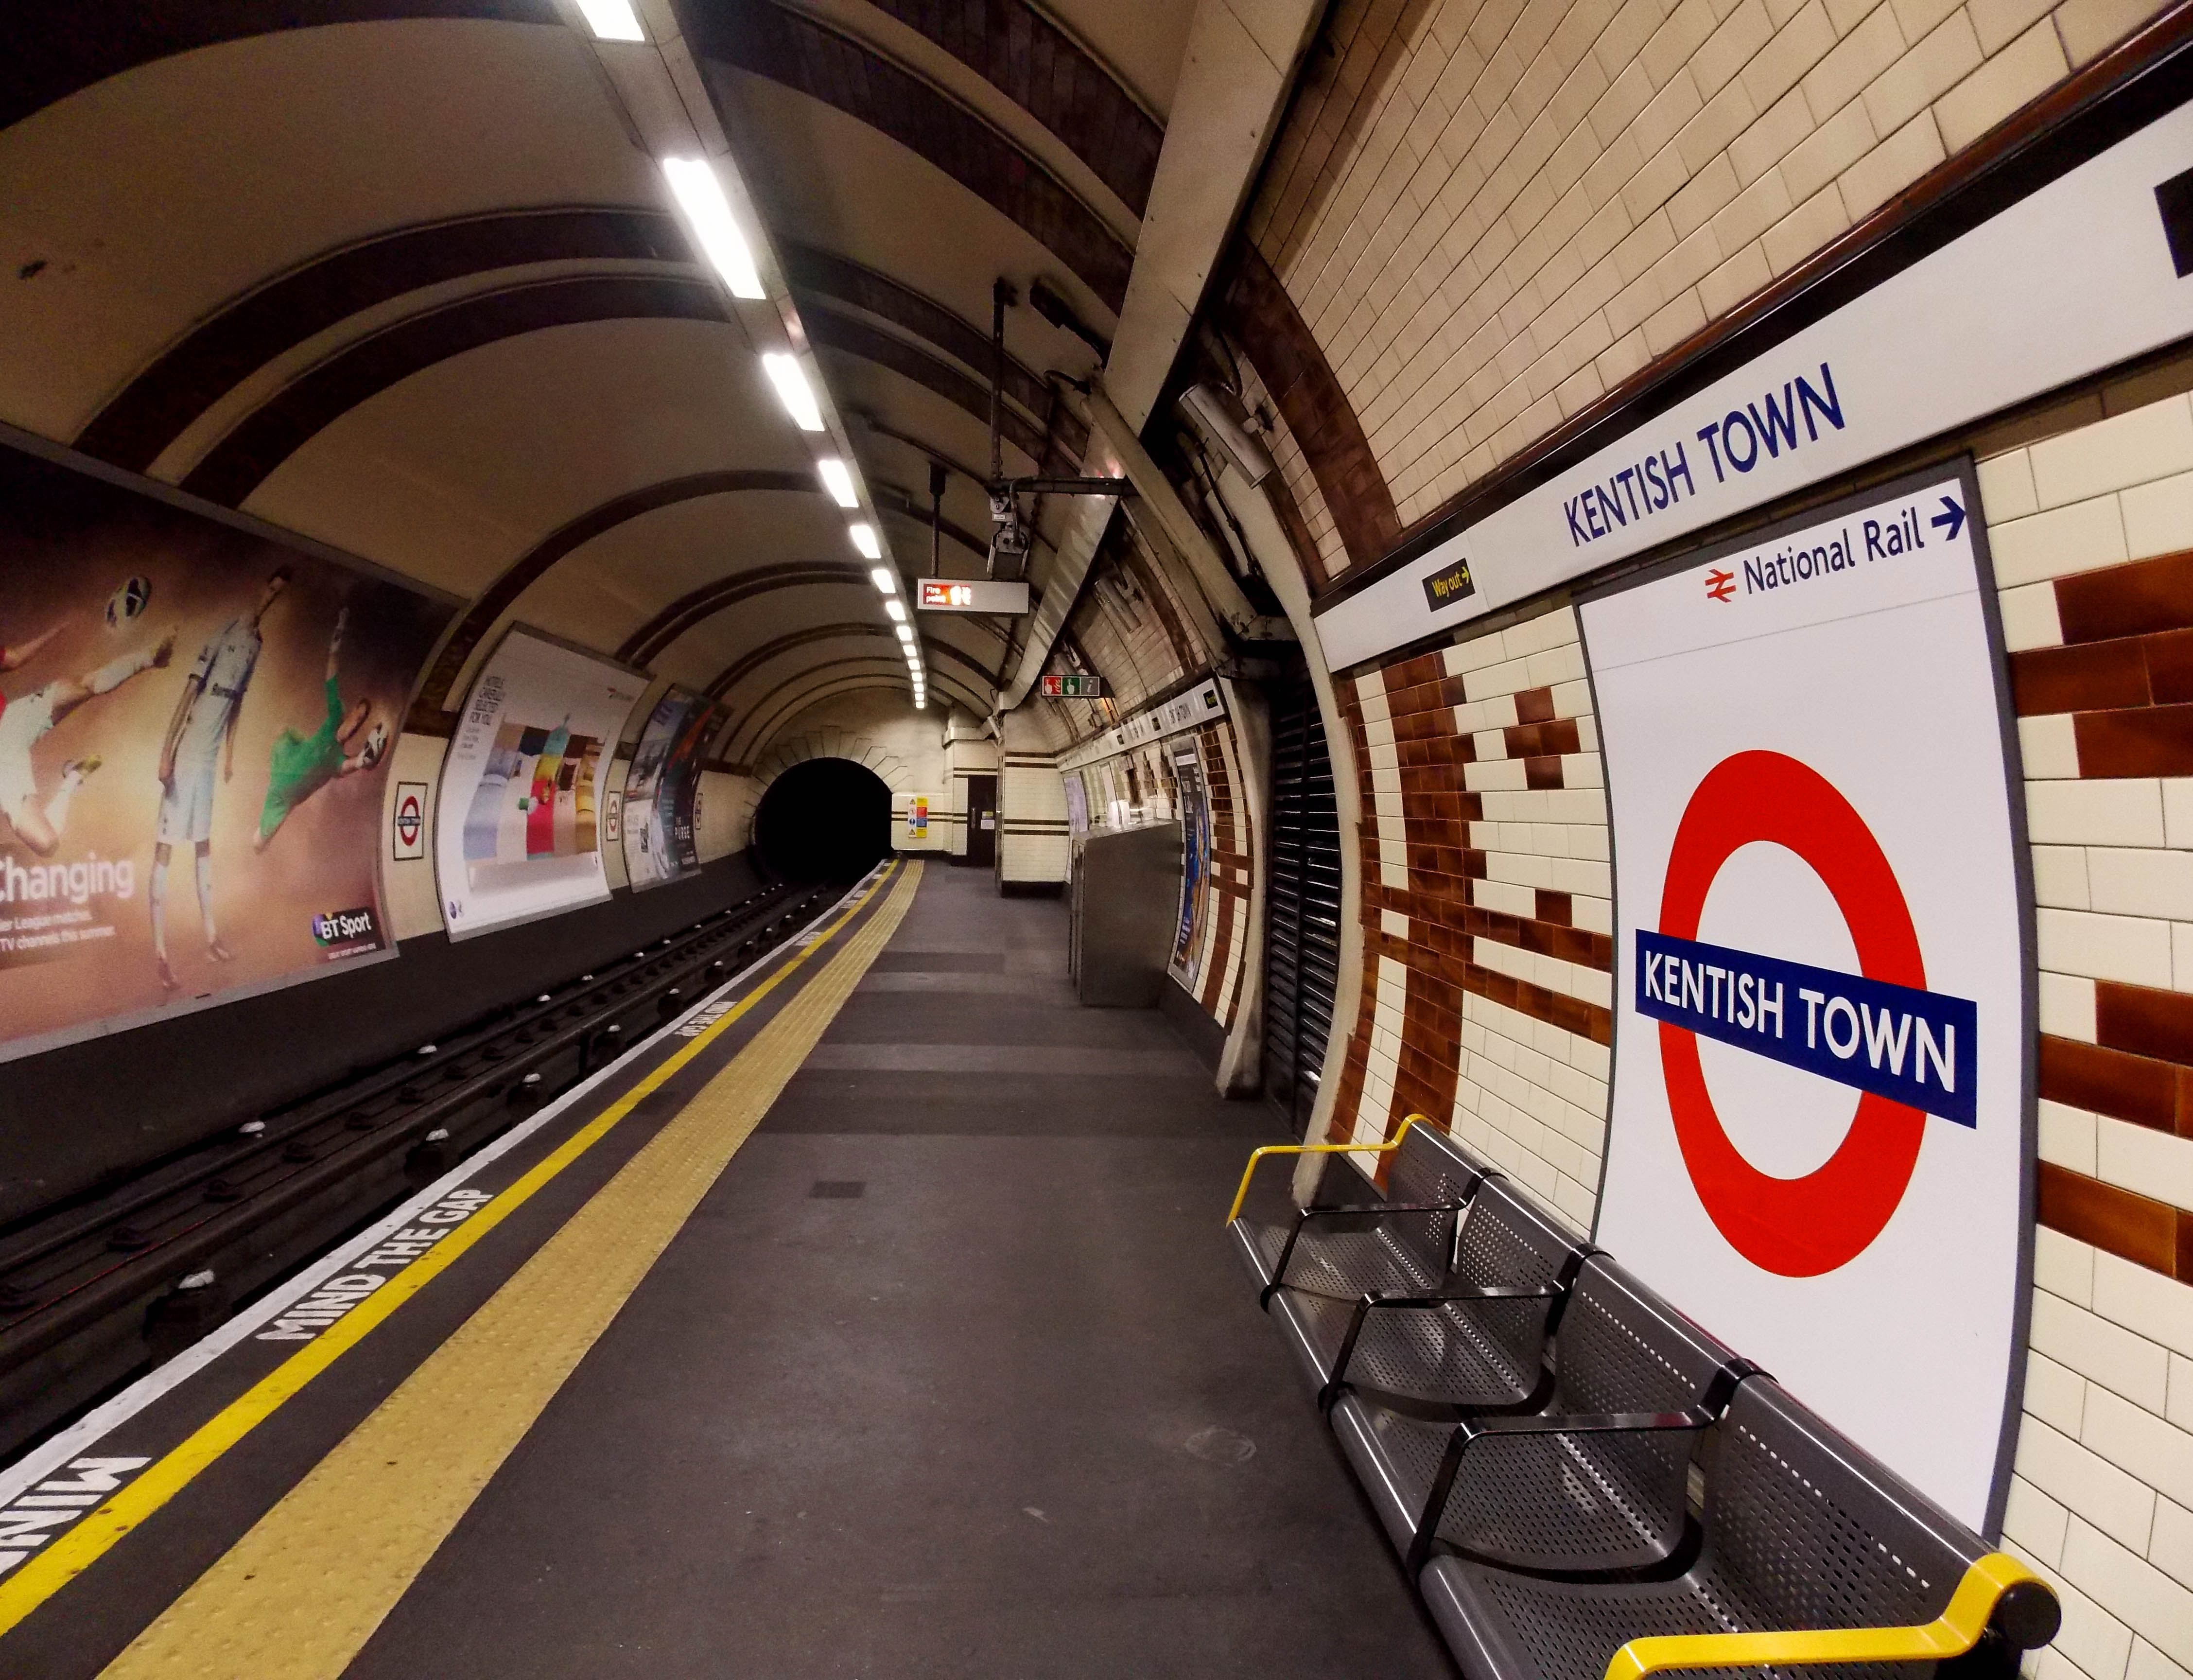 Kentish Town Tube by Nicky Jameson